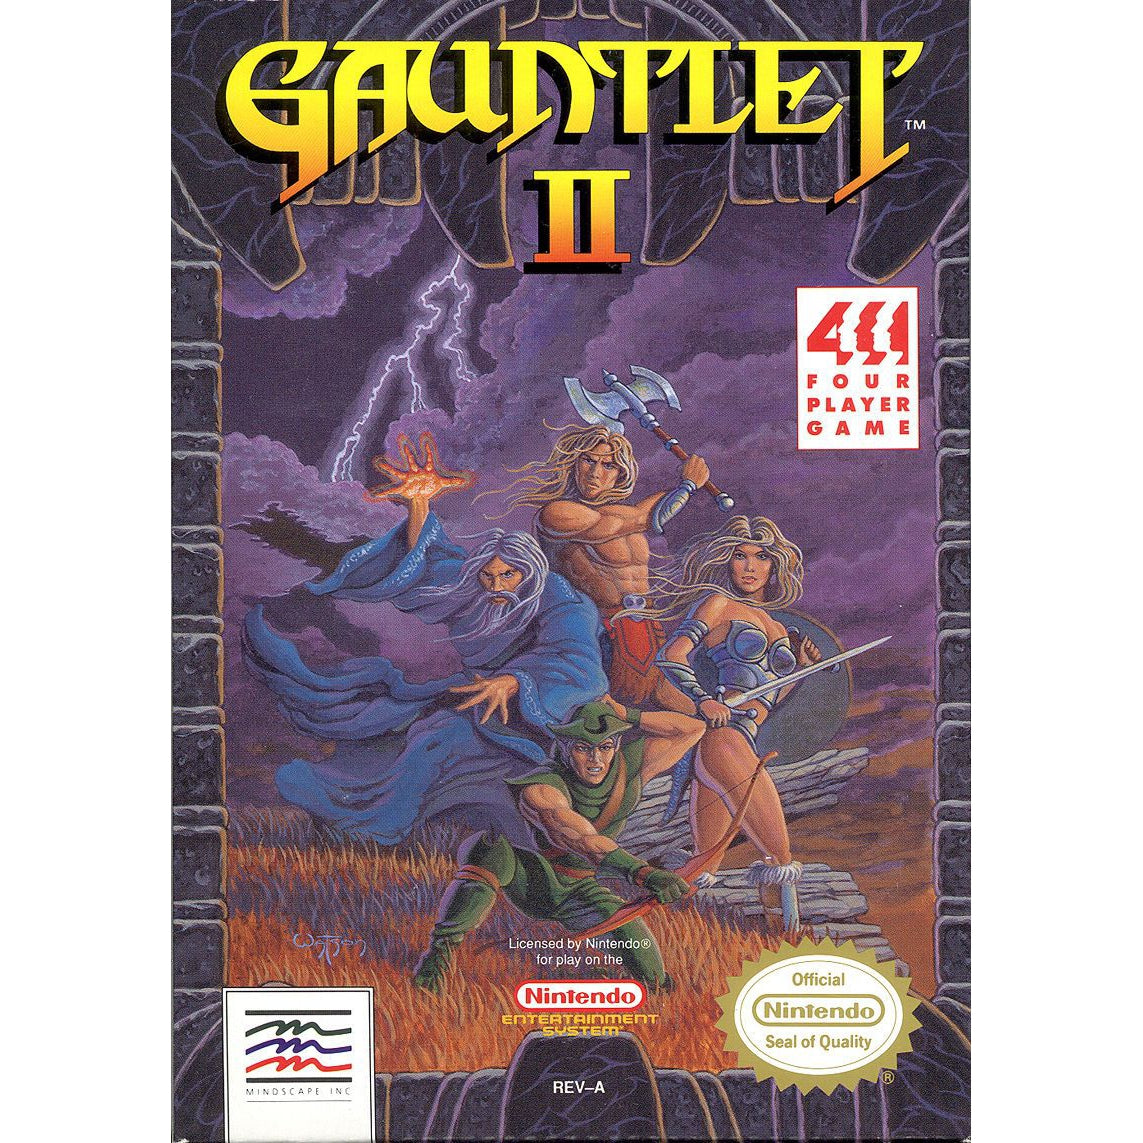 Gauntlet II - Authentic NES Game Cartridge - YourGamingShop.com - Buy, Sell, Trade Video Games Online. 120 Day Warranty. Satisfaction Guaranteed.